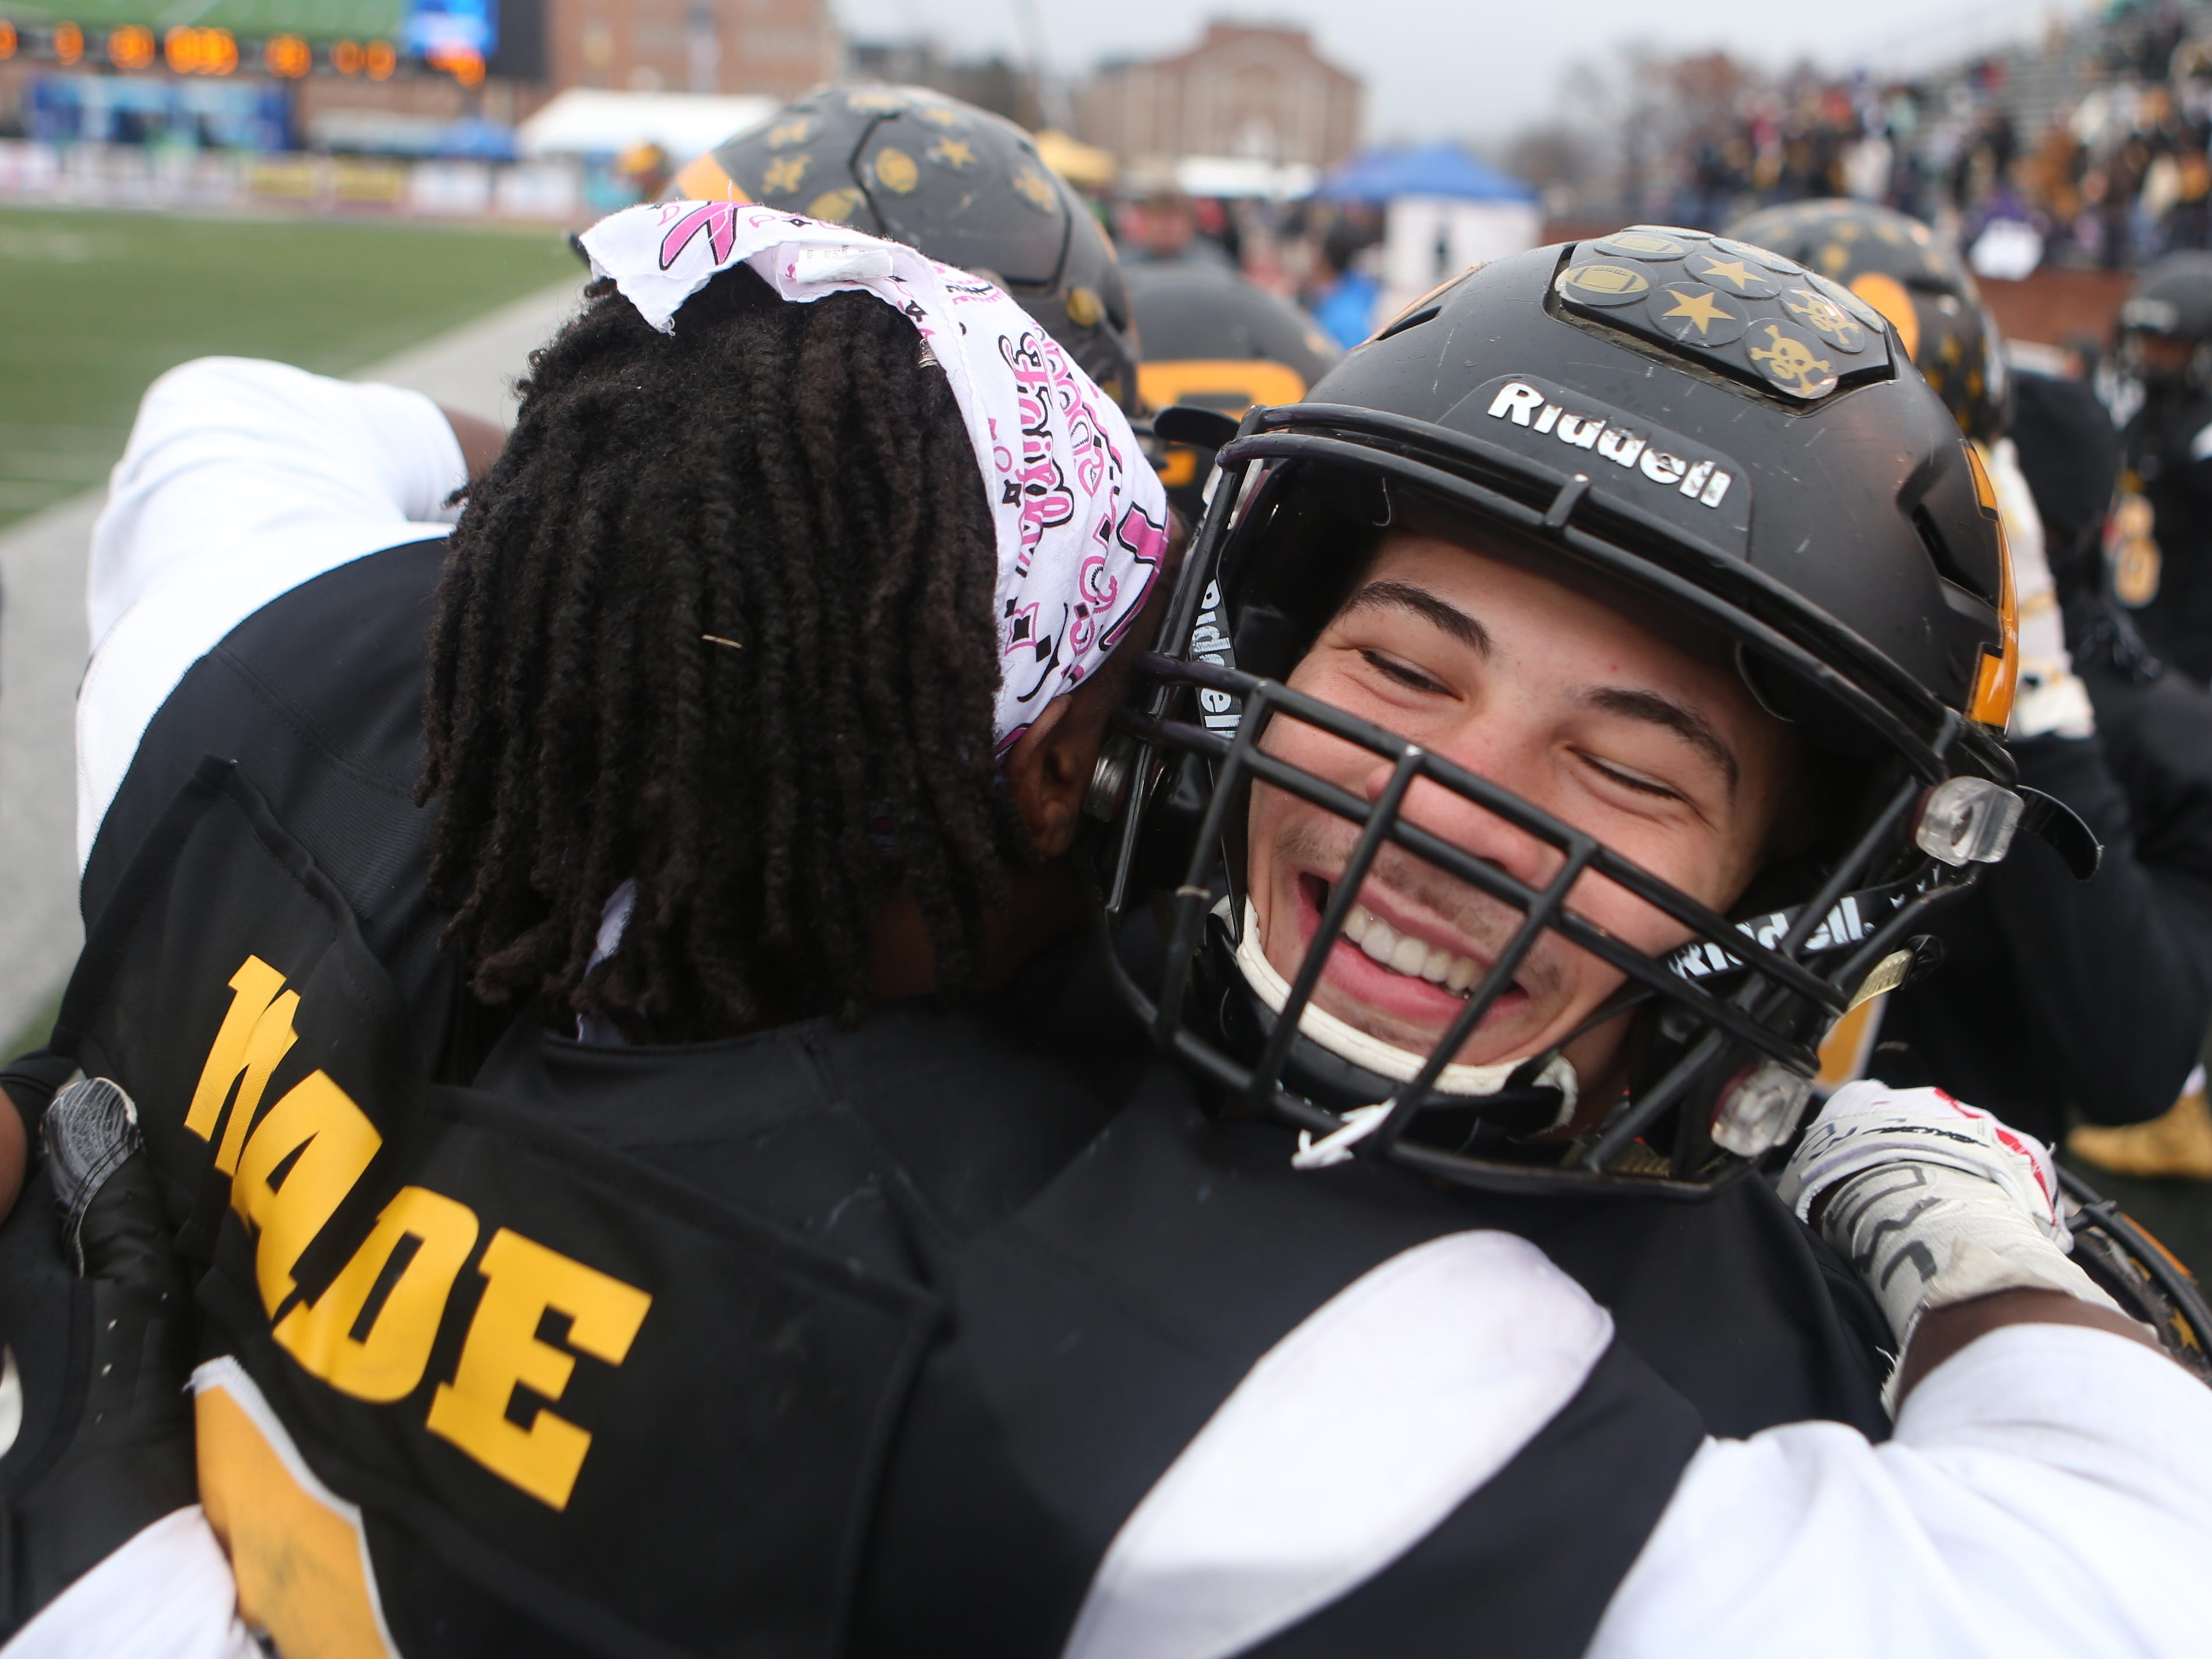 Peabody's Qua Parks (10) and Courtlen Wade (2) celebrate after the team's win in the Class 2A BlueCross Bowl state championship at Tennessee Tech's Tucker Stadium in Cookeville, Tenn., on Thursday, Nov. 29, 2018.